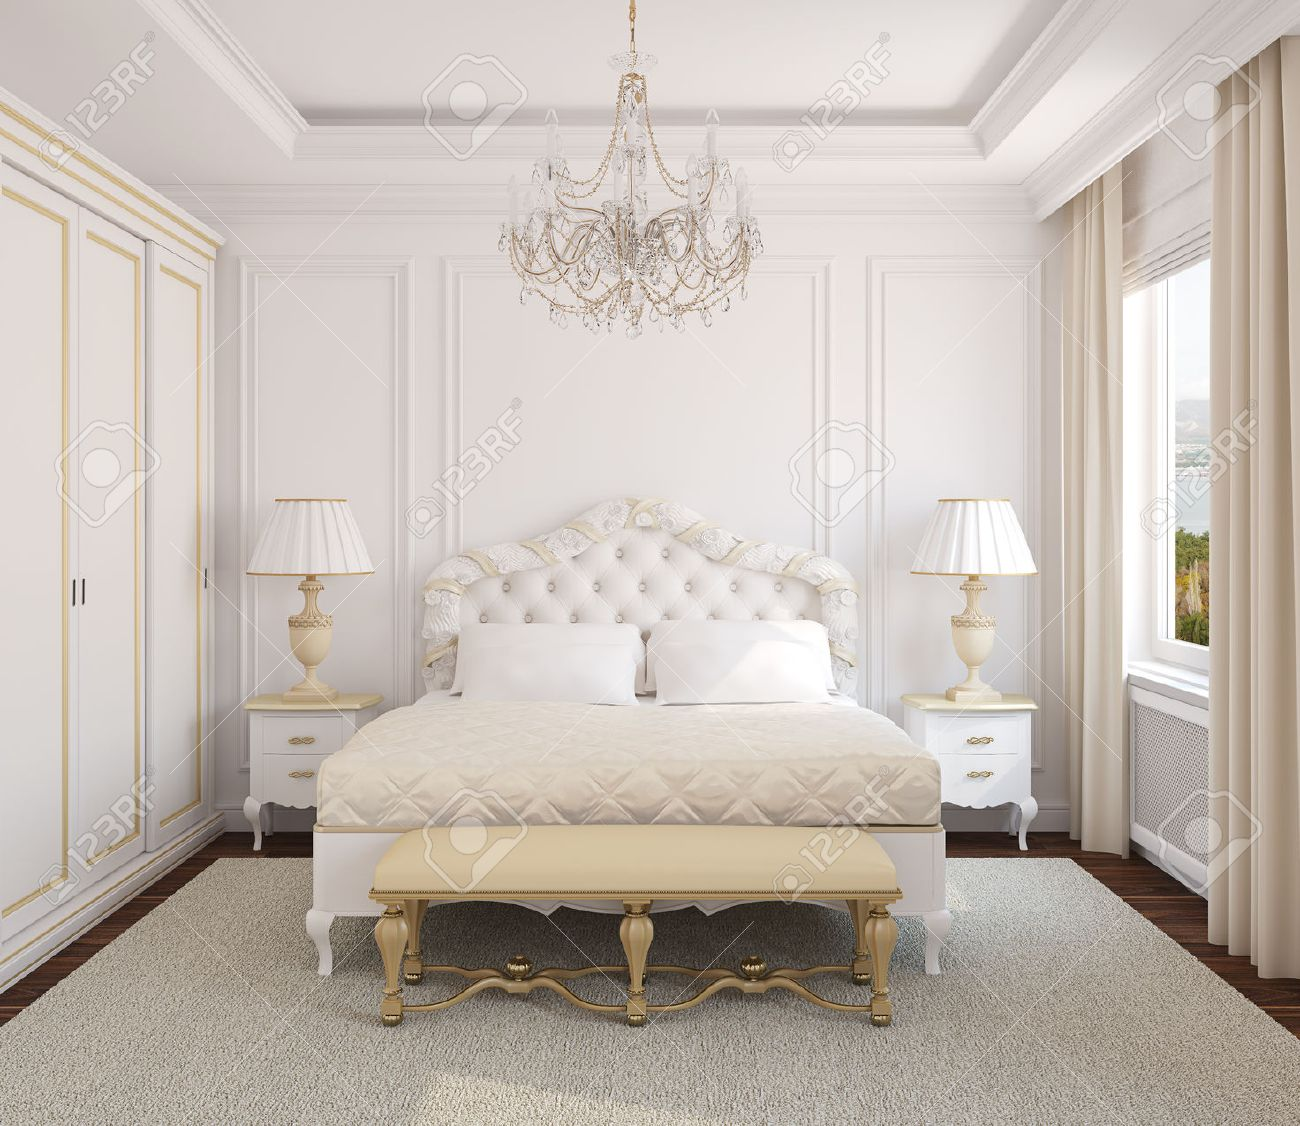 Bedroom Images & Stock Pictures. Royalty Free Bedroom Photos And ...